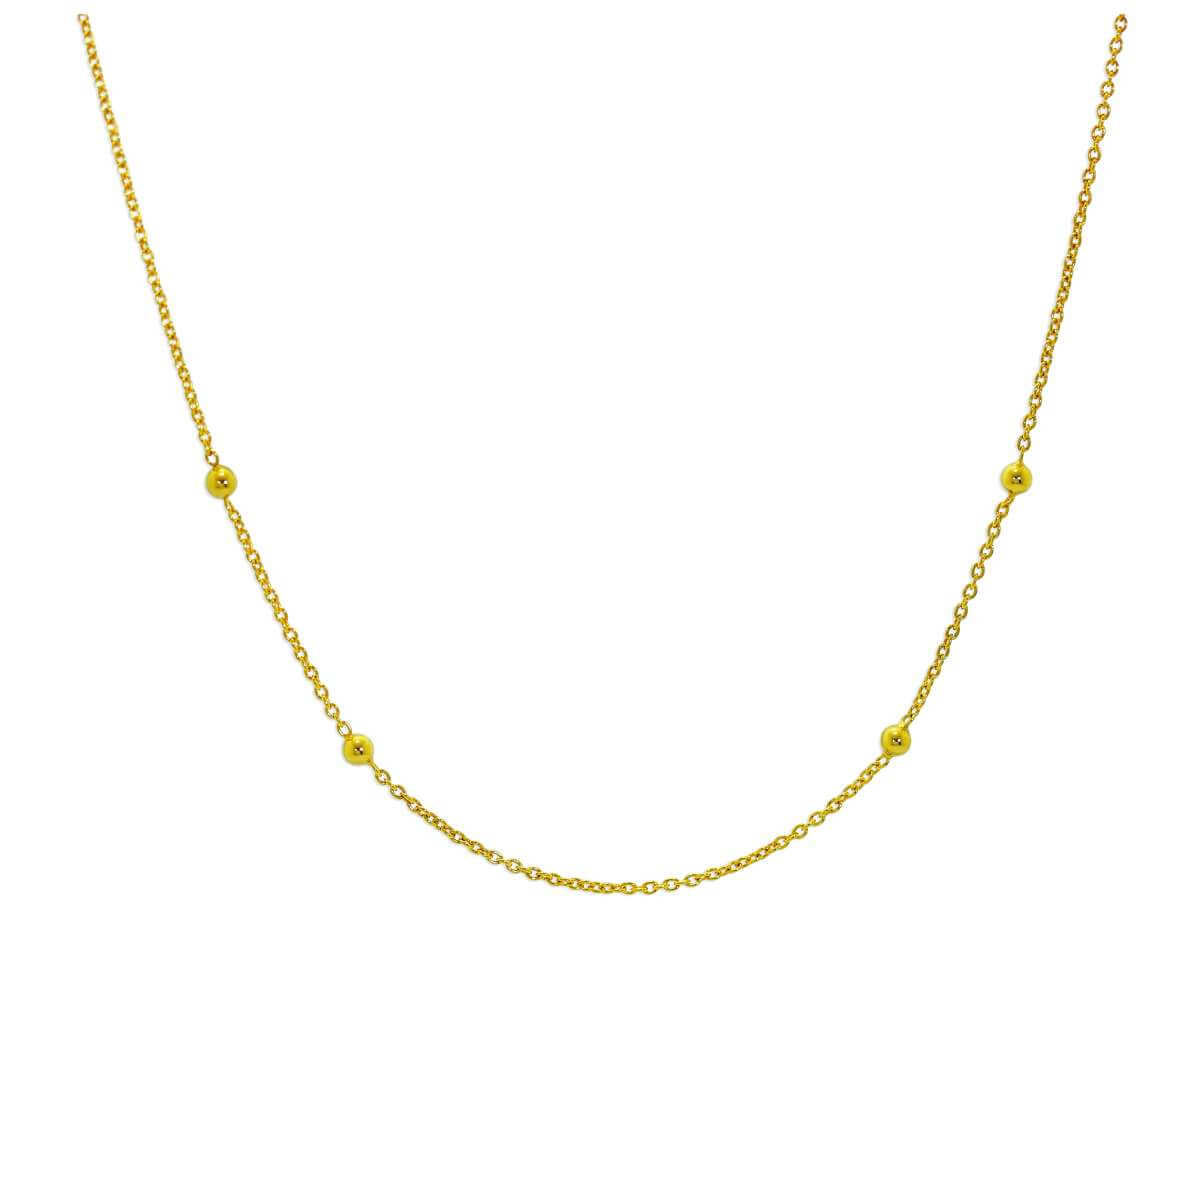 Gold Plated Sterling Silver Bobble 16 Inch Chain Necklace